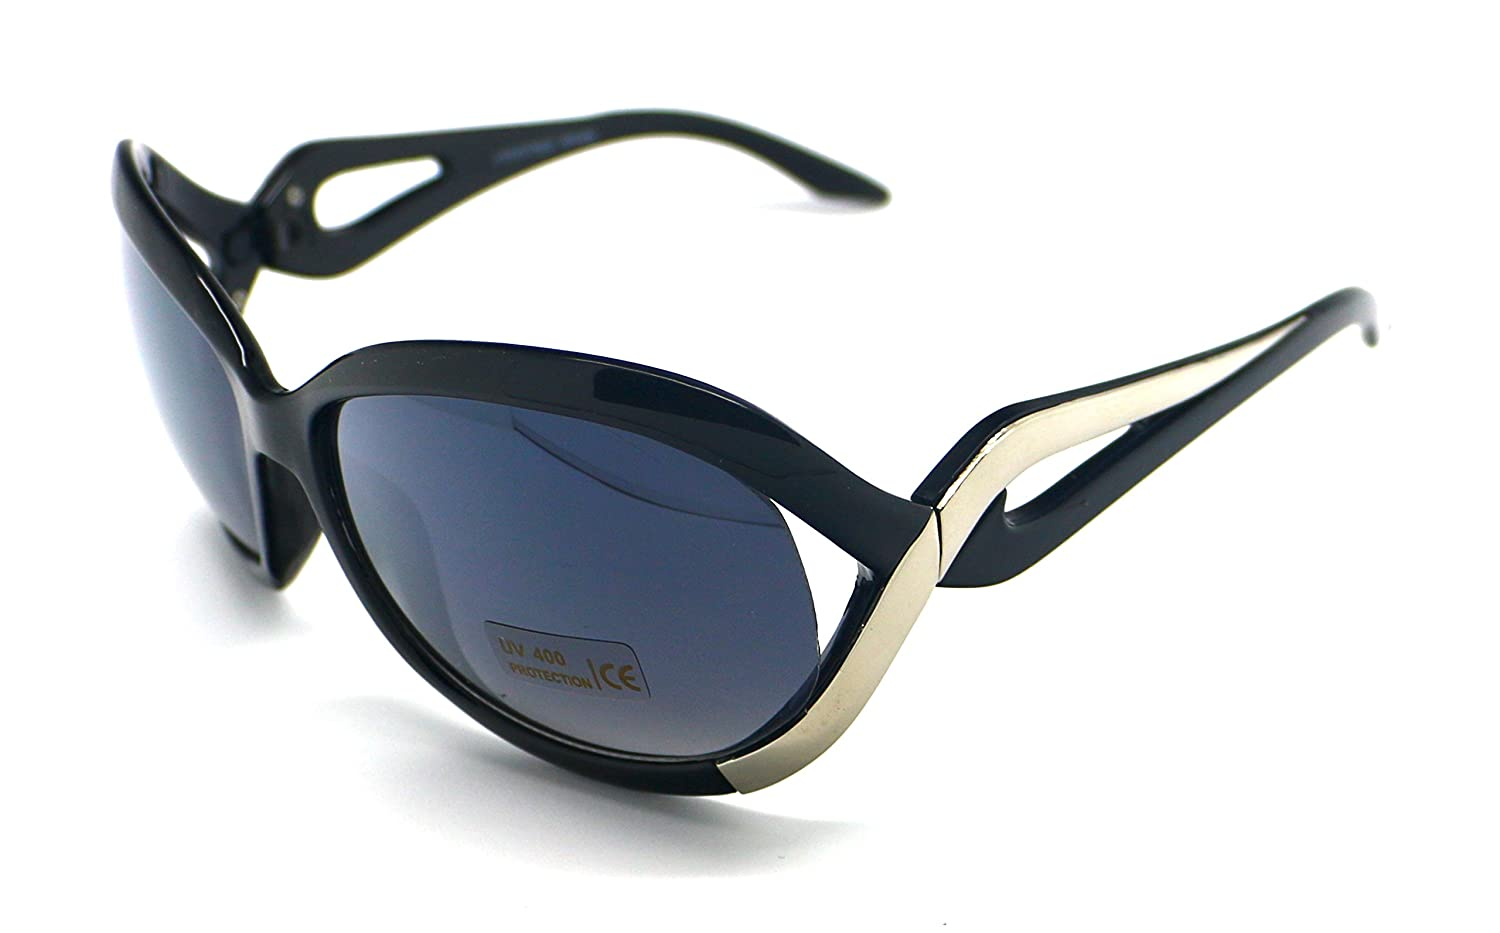 Totalcovers Gafas de Sol Mujer Lagofree W5450 UV 400 ...